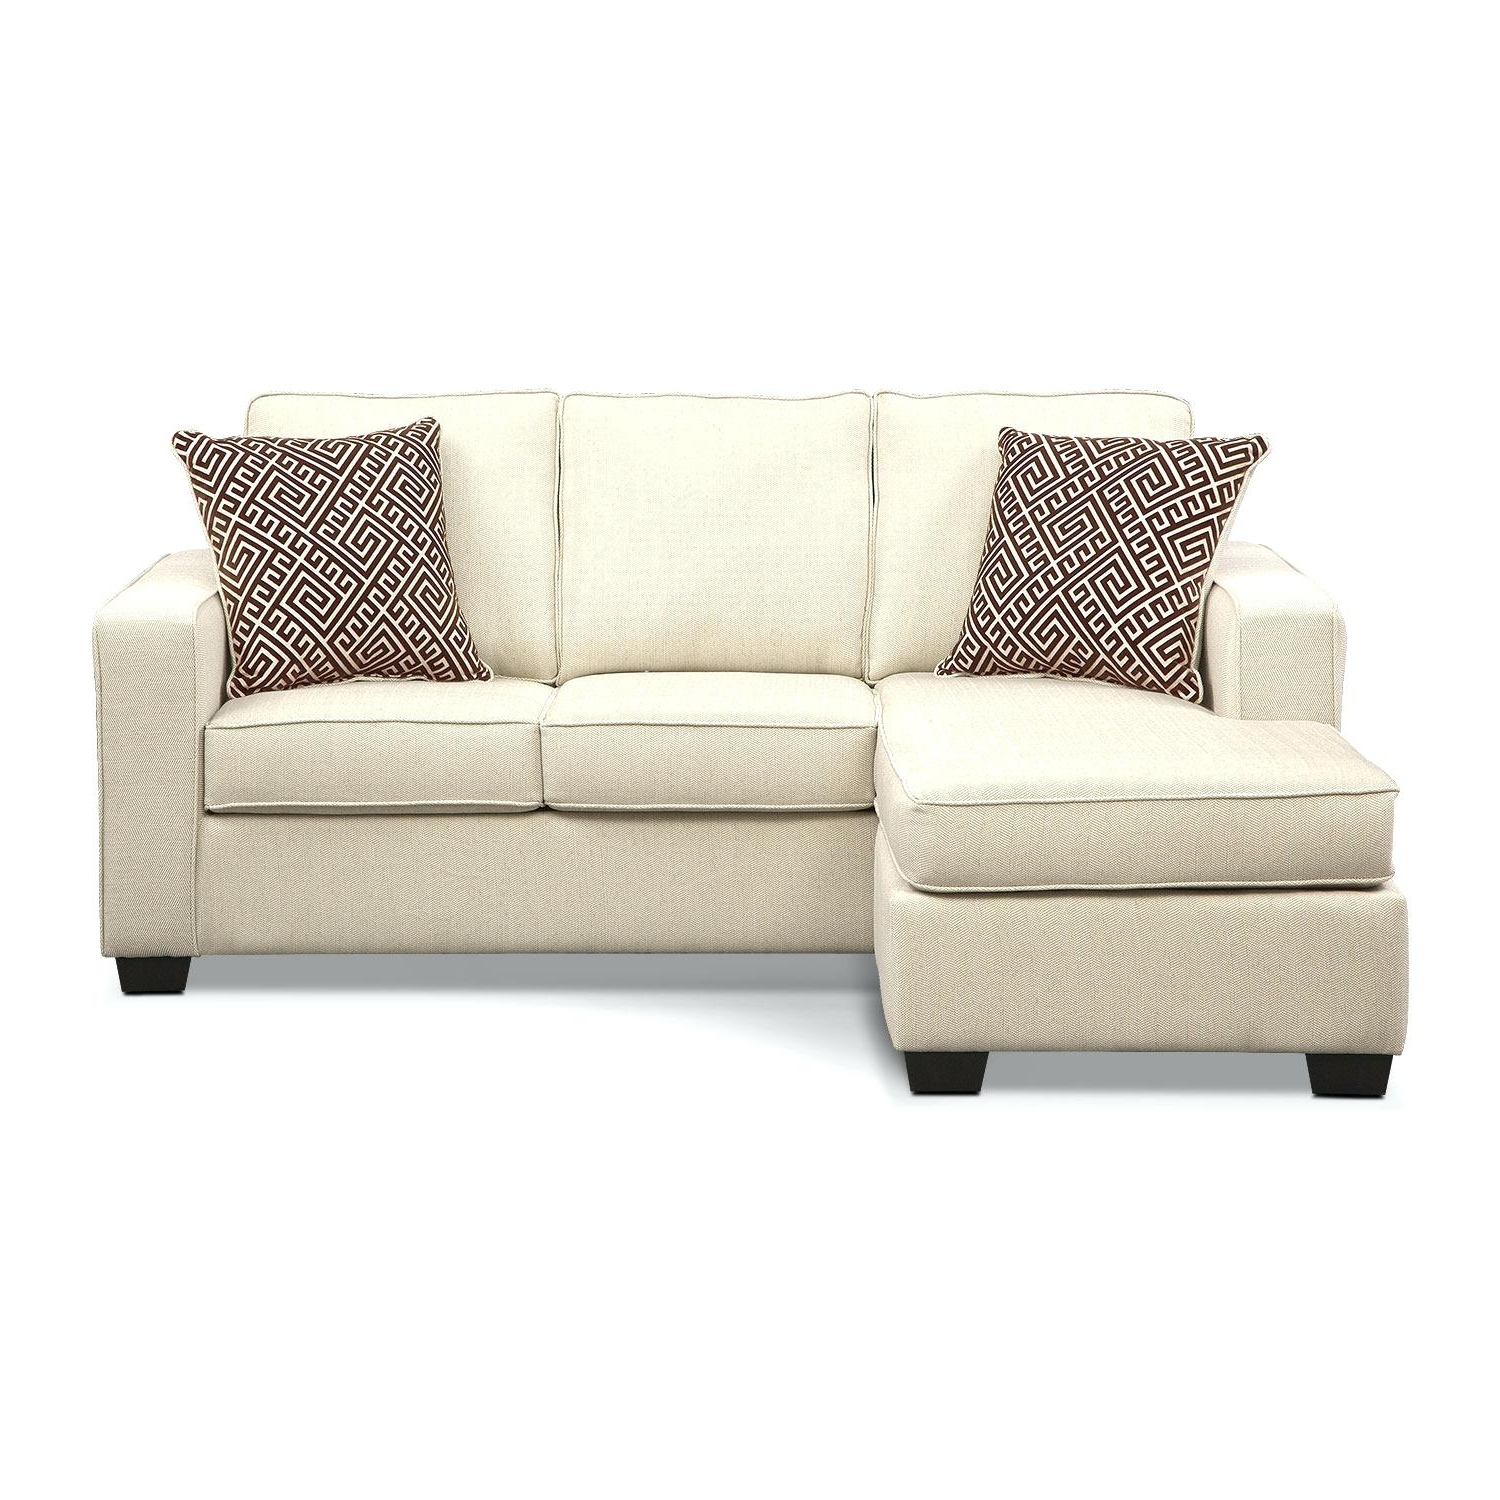 Latest City Furniture Sofa Beds Value Bed With – 4Parkar In City Sofa Beds (View 13 of 15)